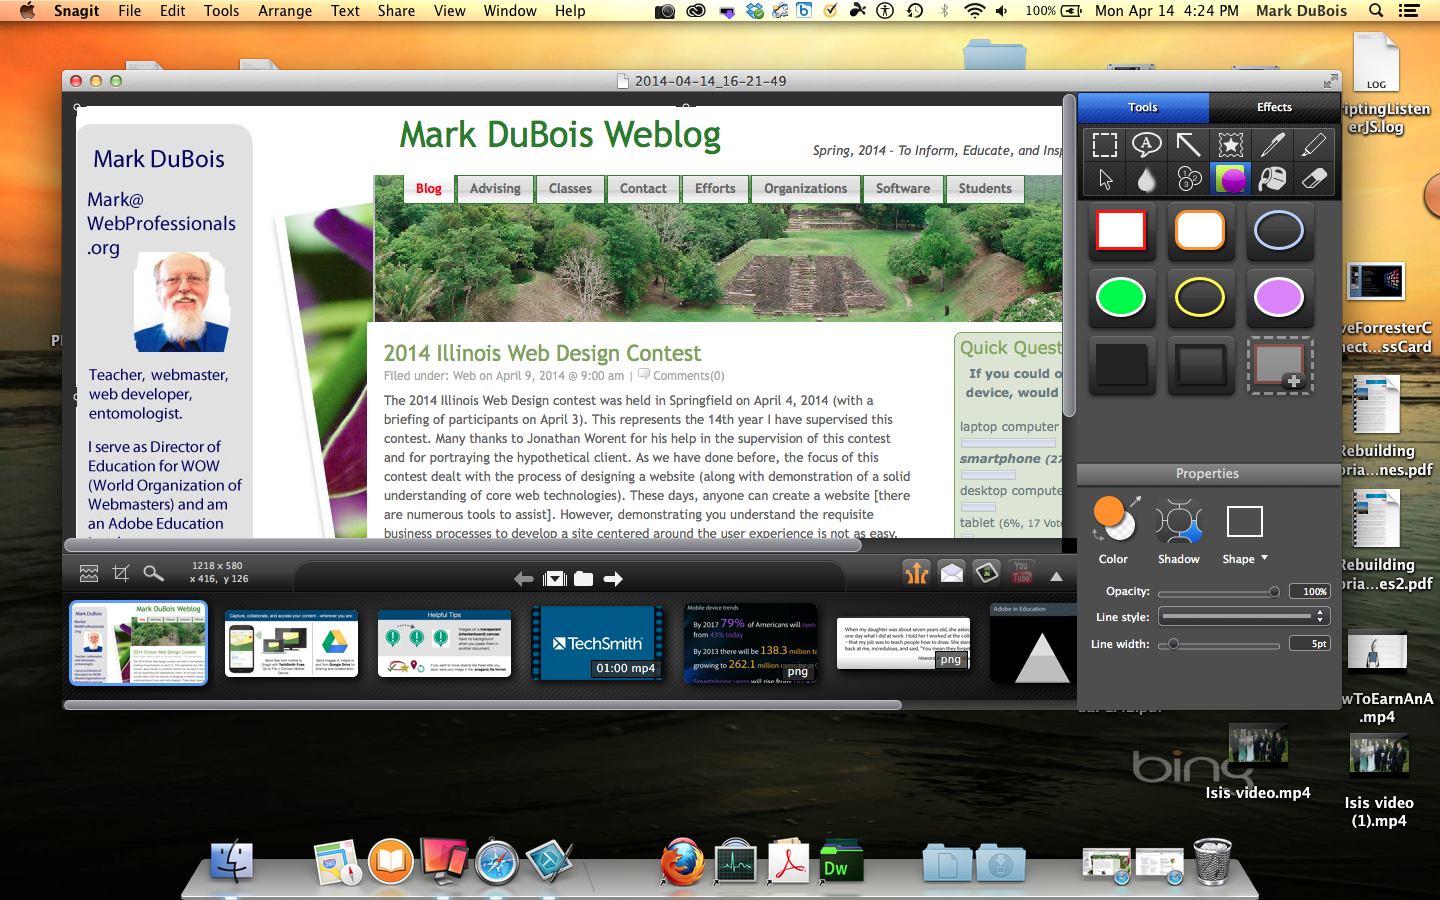 Full Screen Mac SnagIt Editor. Next, the Windows version. In this case, I